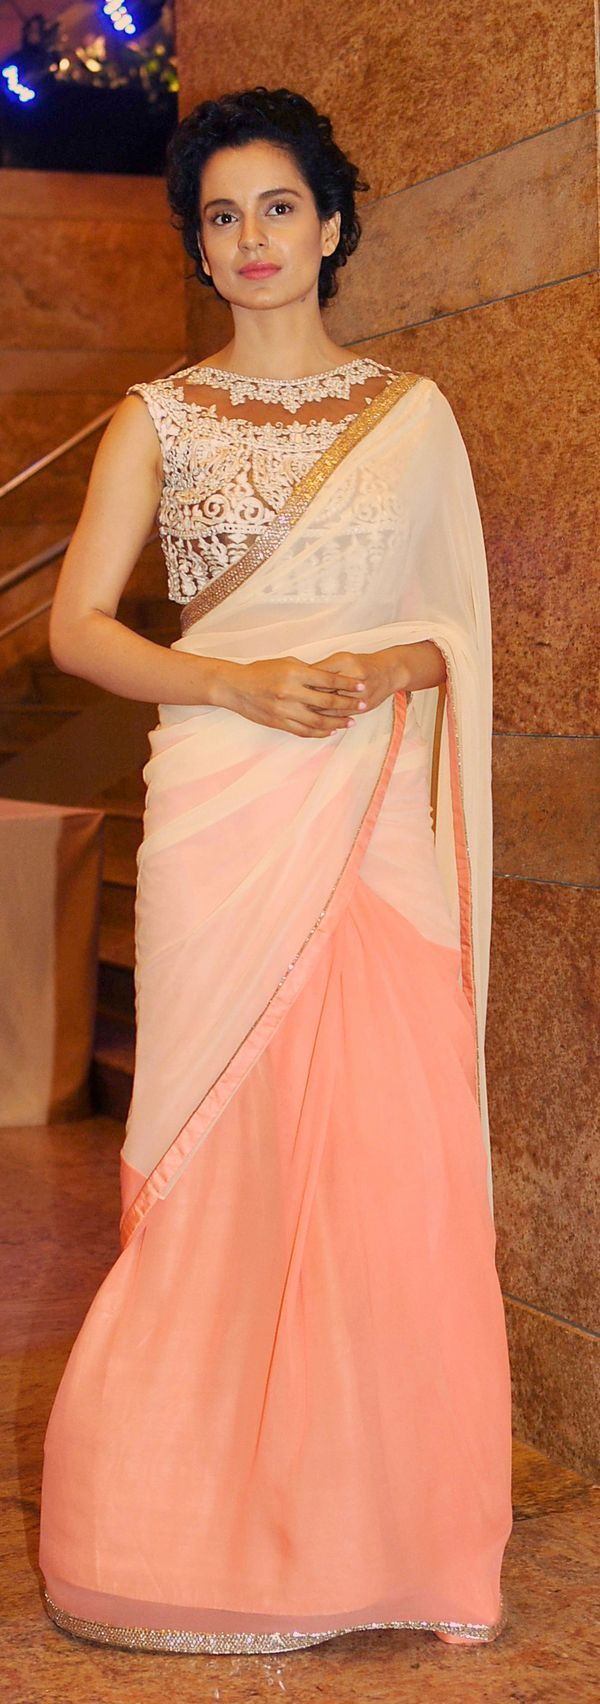 Kangana Ranaut looked statuesque in this ombre sari #Style #Bollywood #Fashion #Beauty #saree #sari #blouse #indian #outfit #fashion #style #desi #designer #ombre #wedding #gorgeous #beautiful